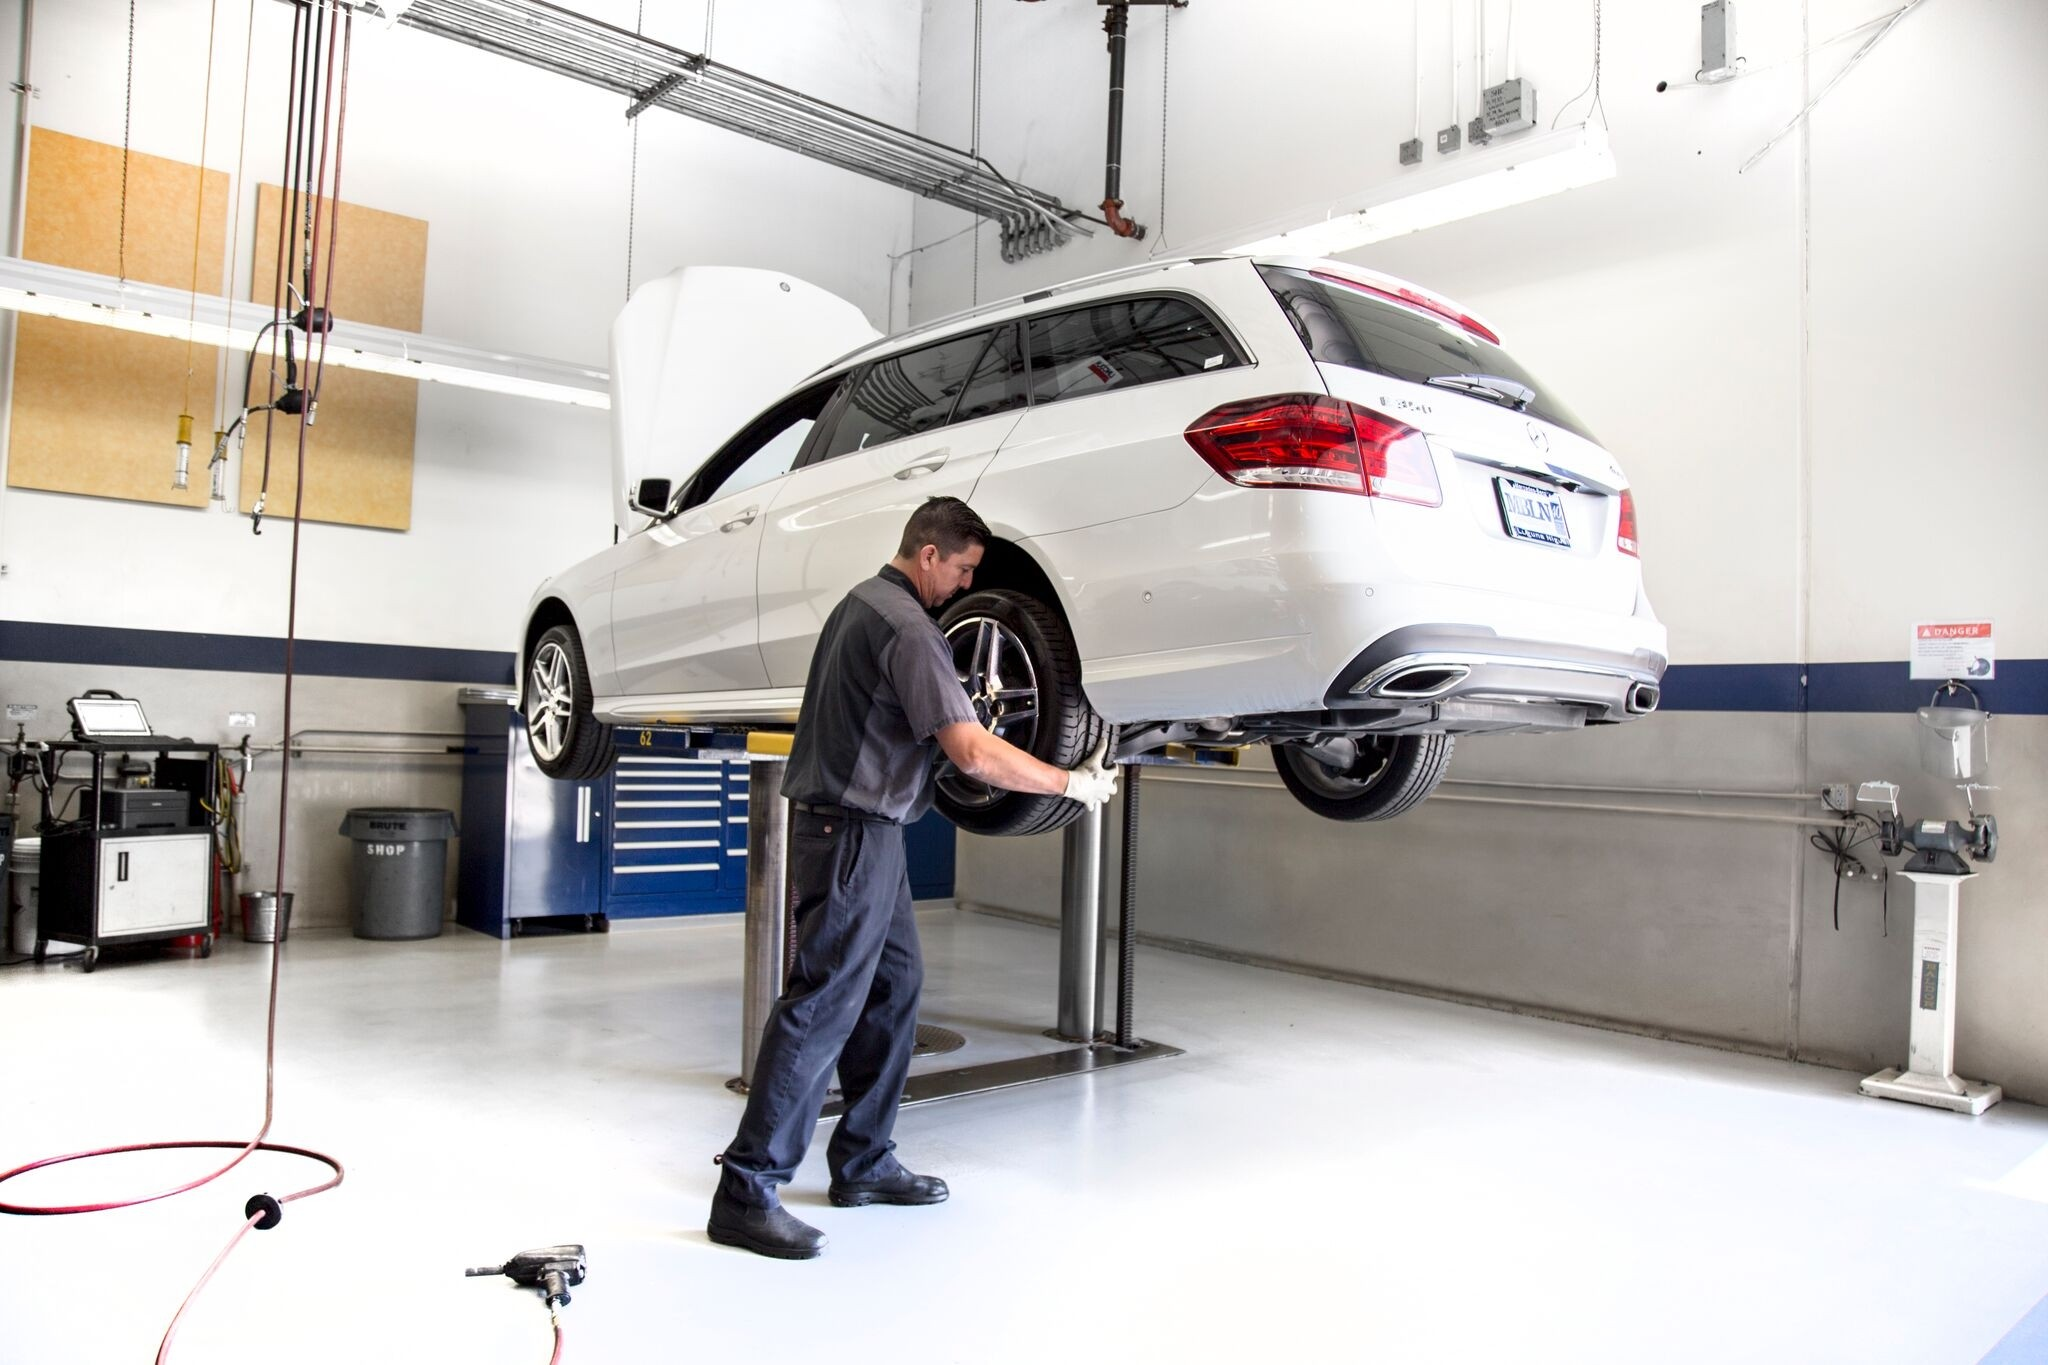 Servicing Your Mercedes Benz at Your Local Dealership vs An